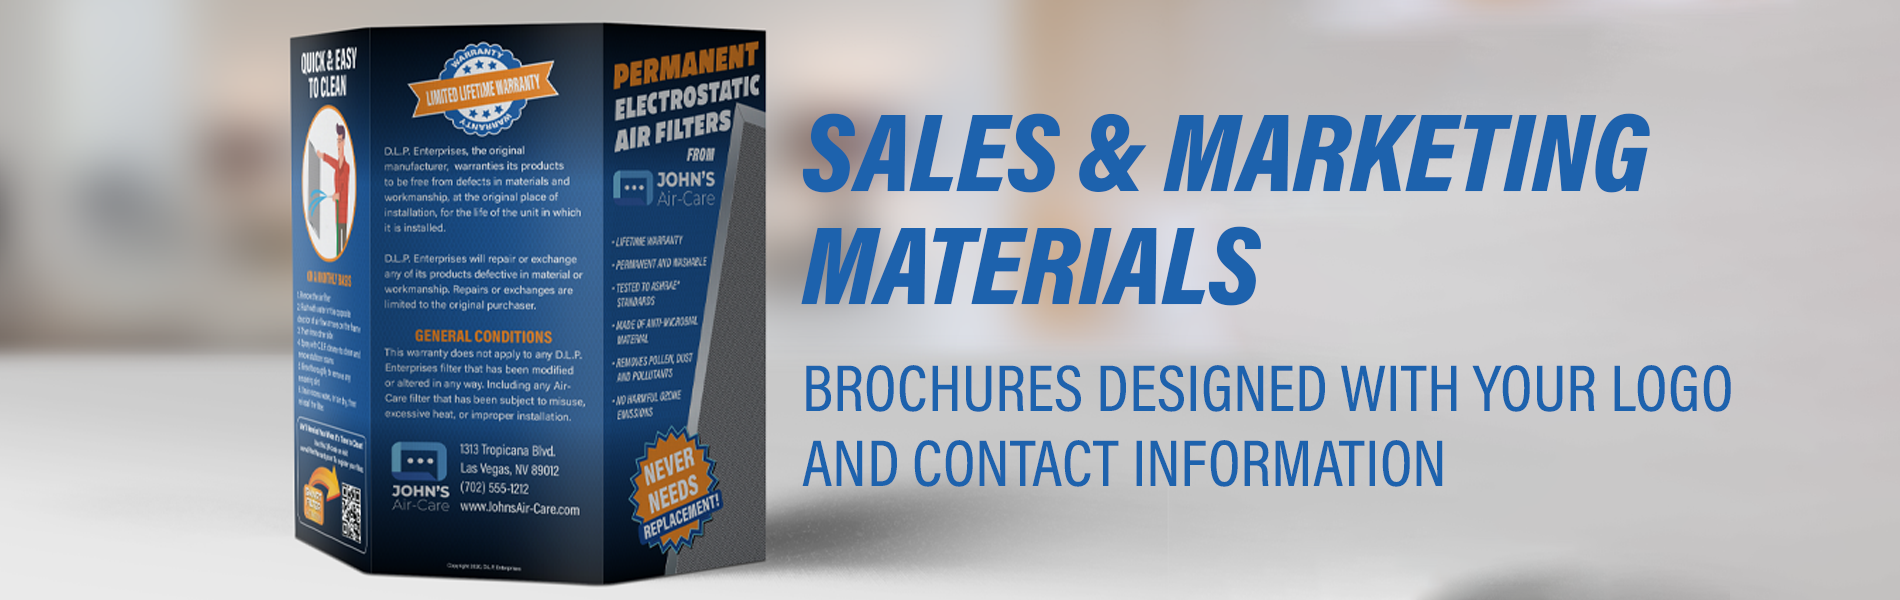 sales and marketing header image